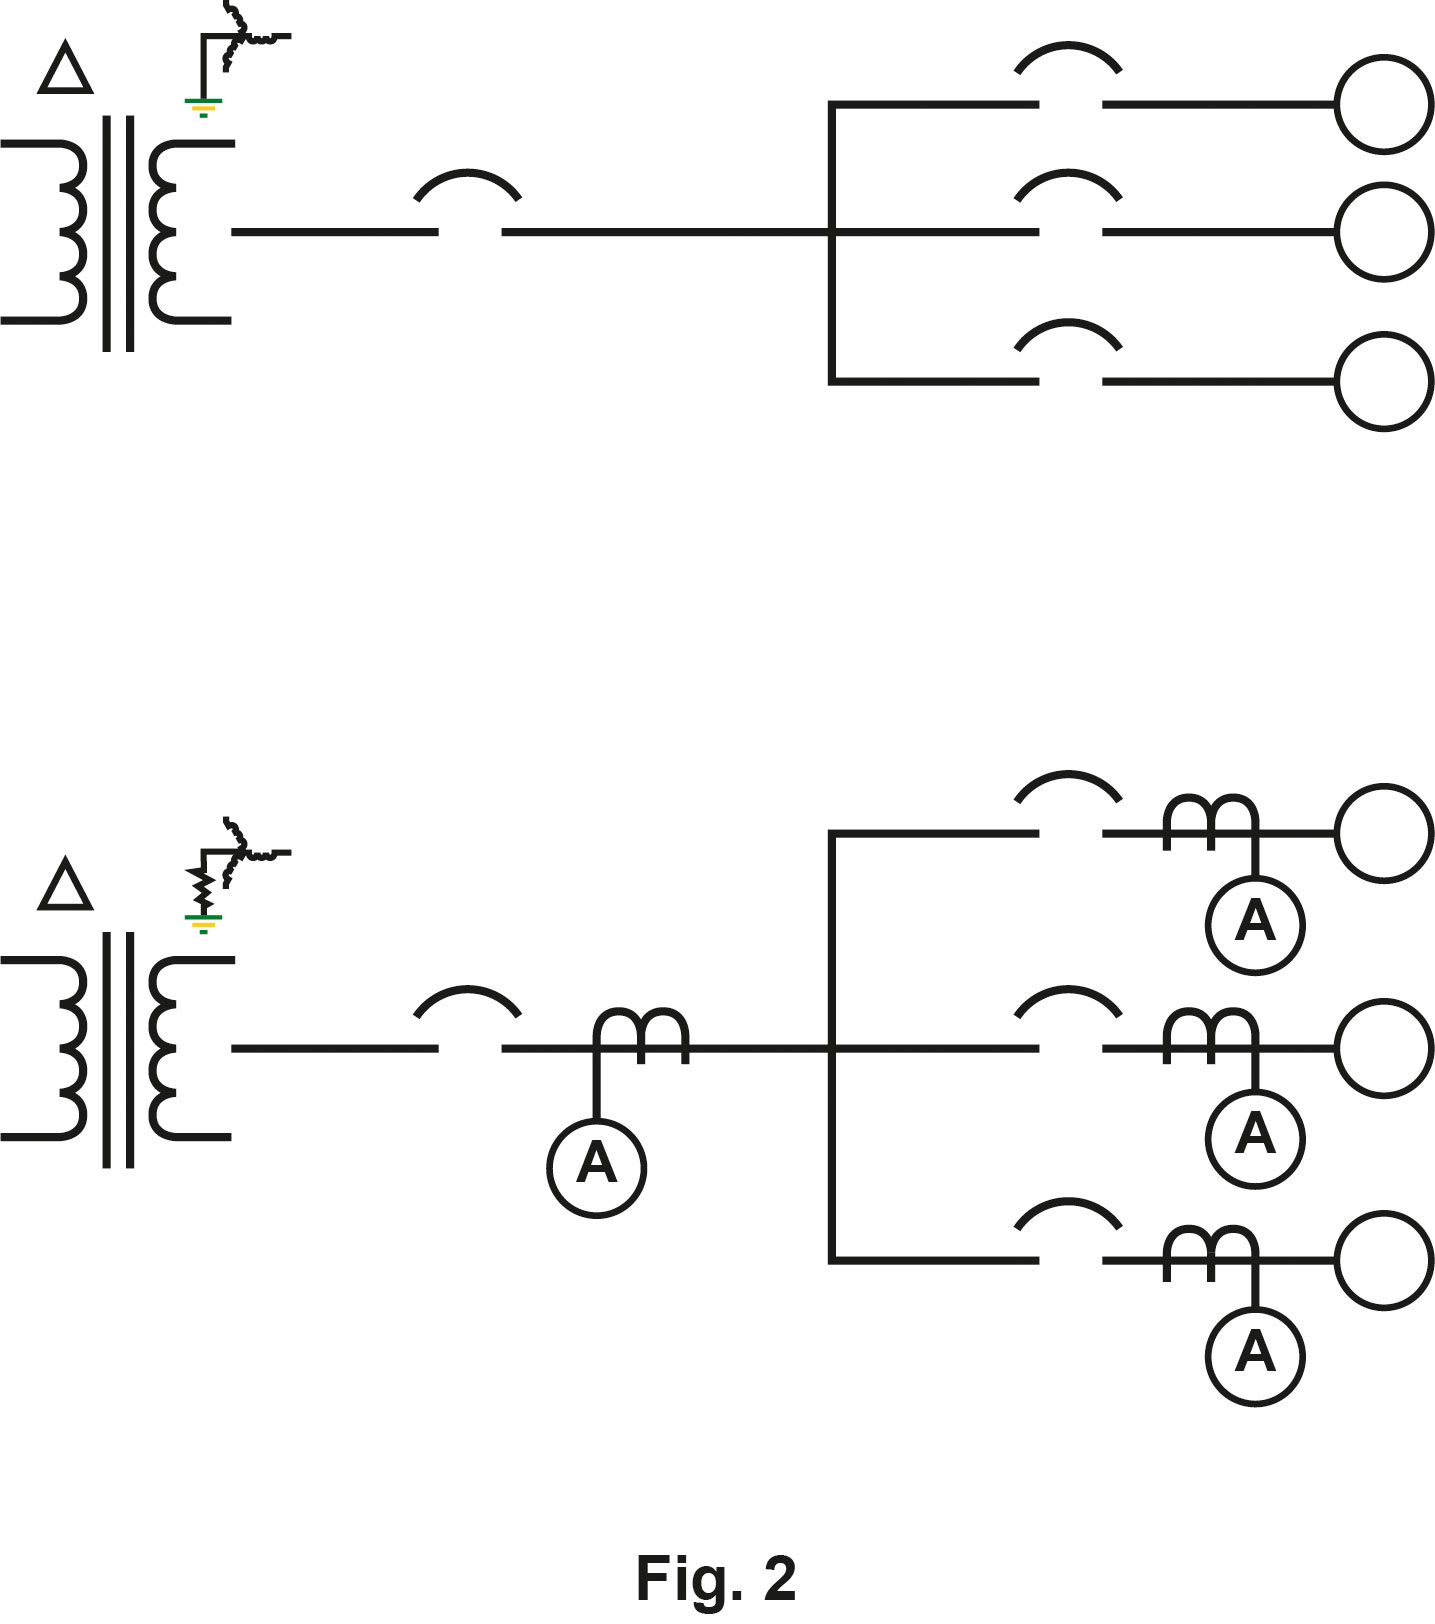 Grounding system with/ without CTs